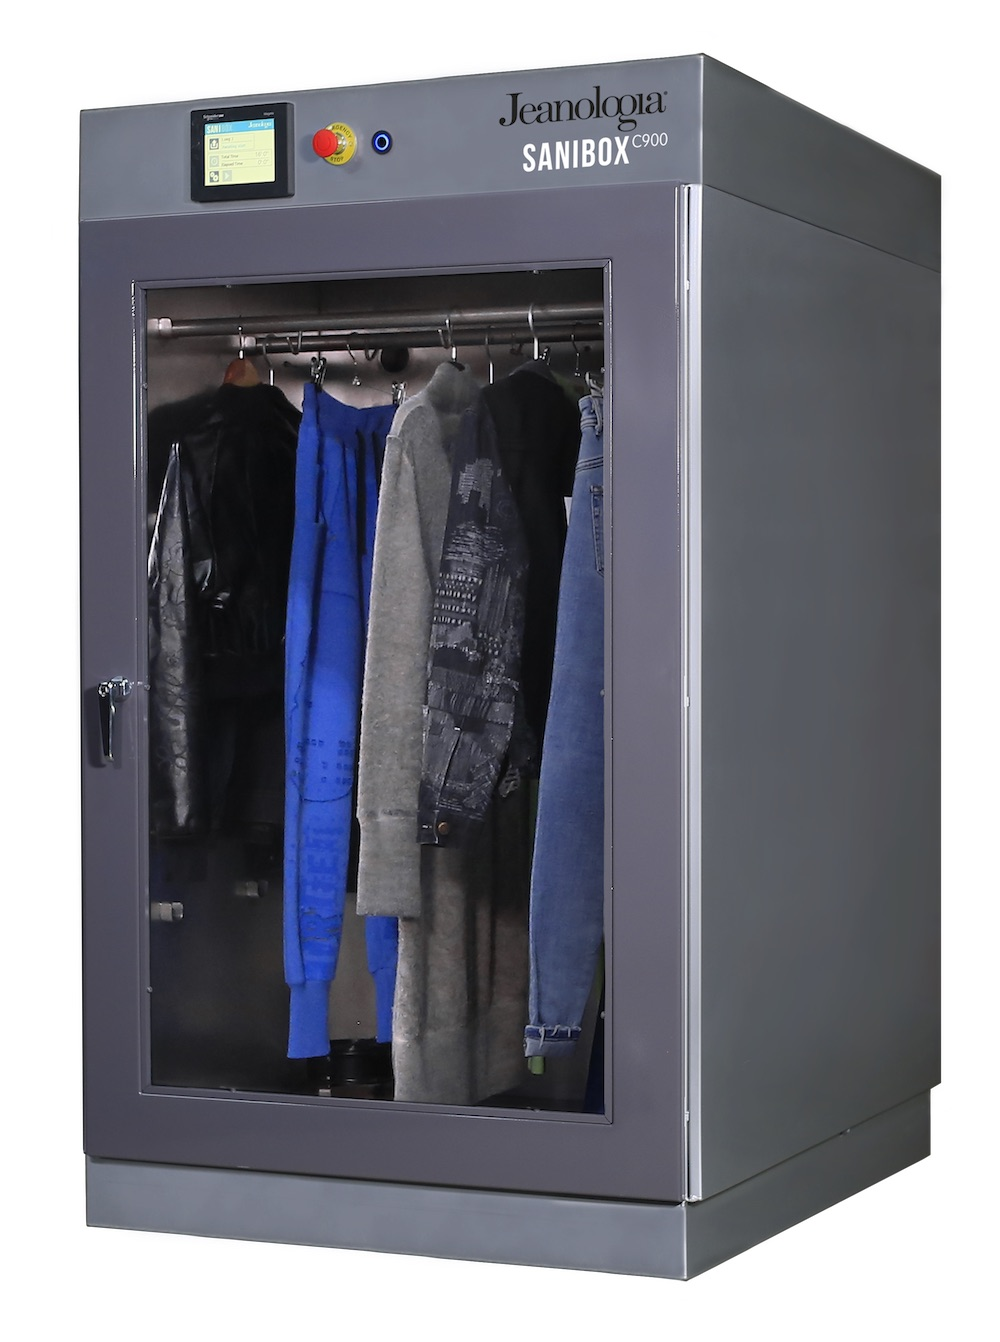 Spanish finishing technology company Jeanologia developed Sanibox, a chamber used to sanitize garments possibly carrying COVID-19.